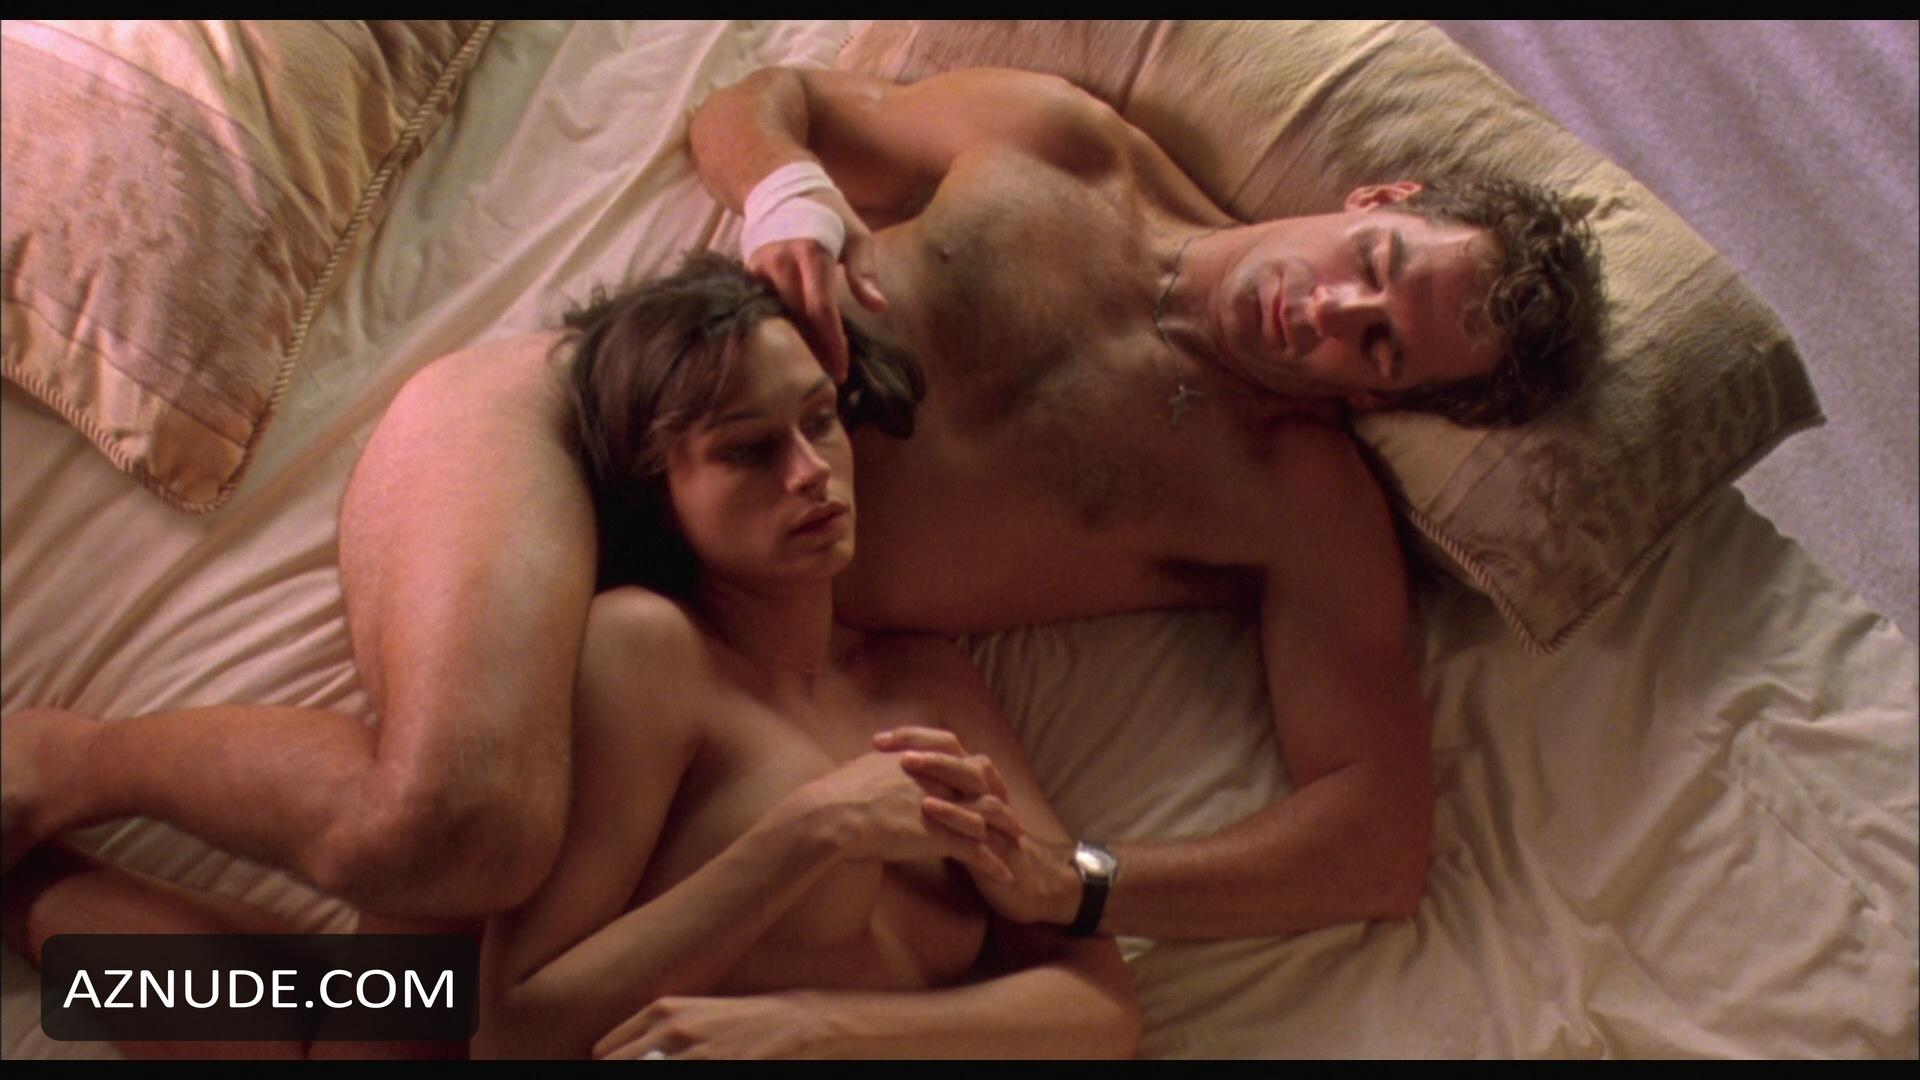 Famke janssen naked with dick in mouth very